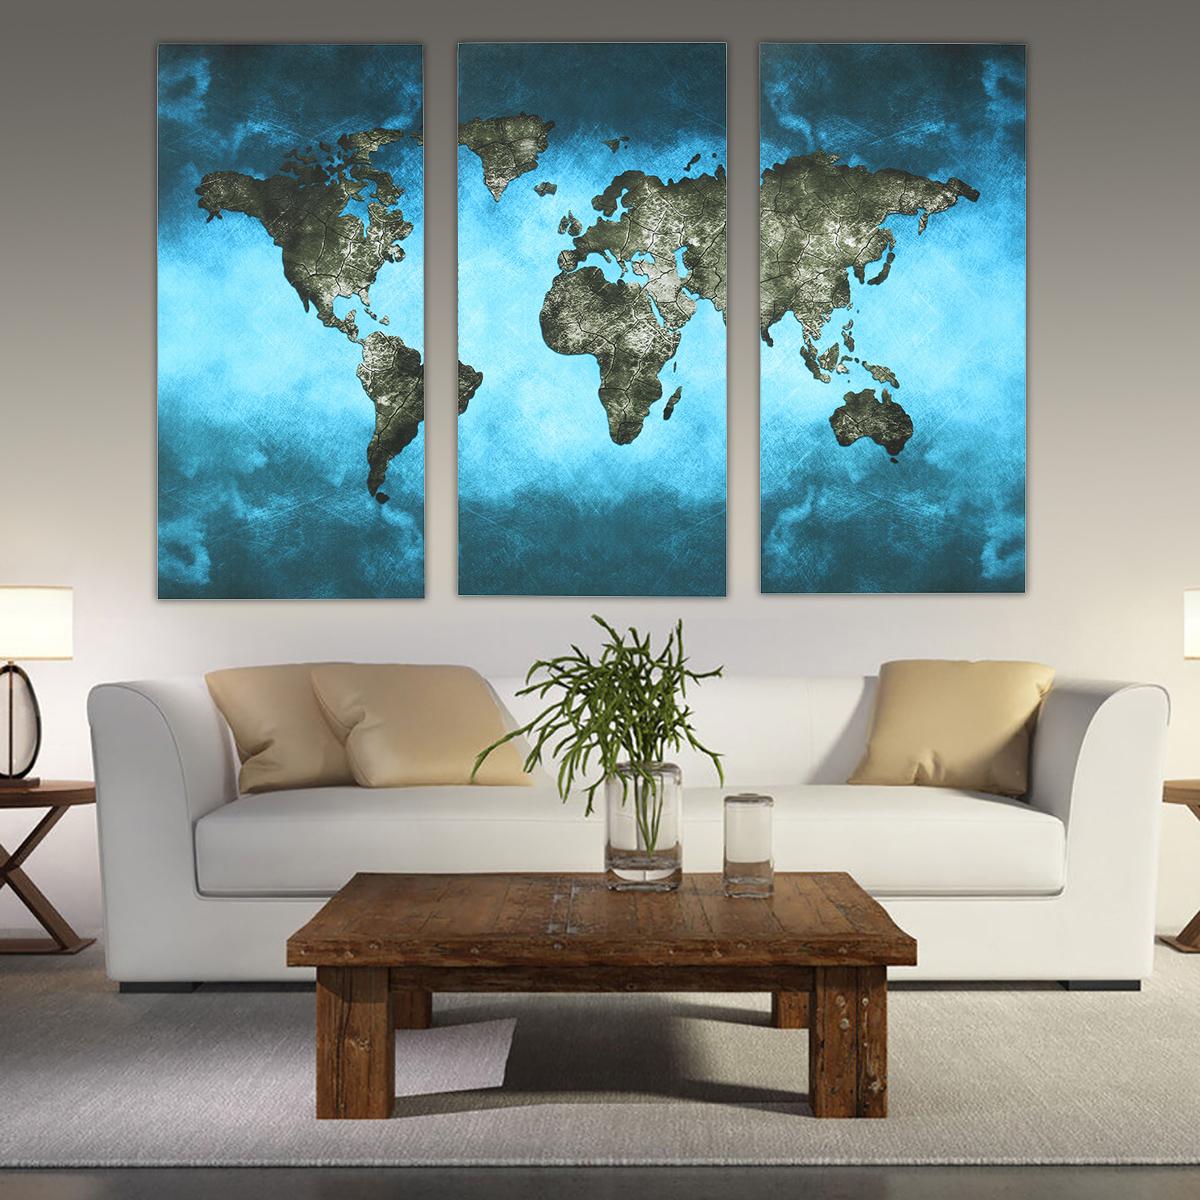 Picture 9 of 9 & 3pcs Canvas Print Panel Vintage World Map Painting Unframed Wall Art ...